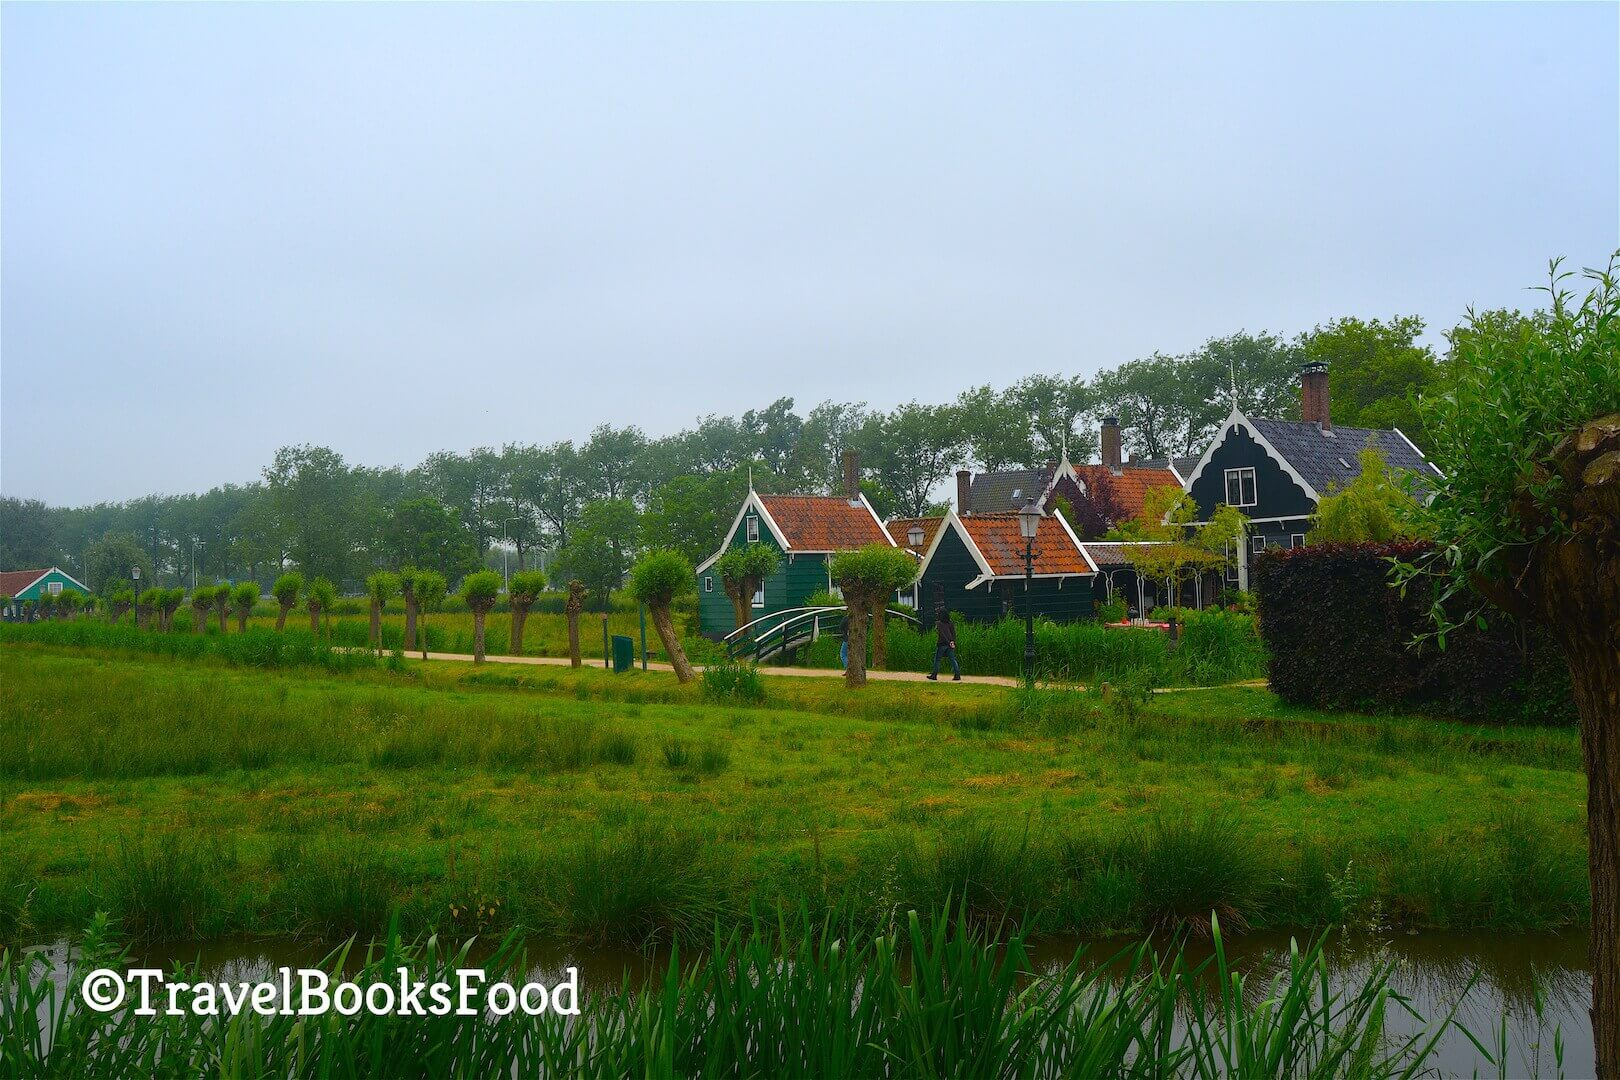 This is a photo of some green houses in Zaanse Schaans in Amsterdam, Netherlands with a large green field in front of it